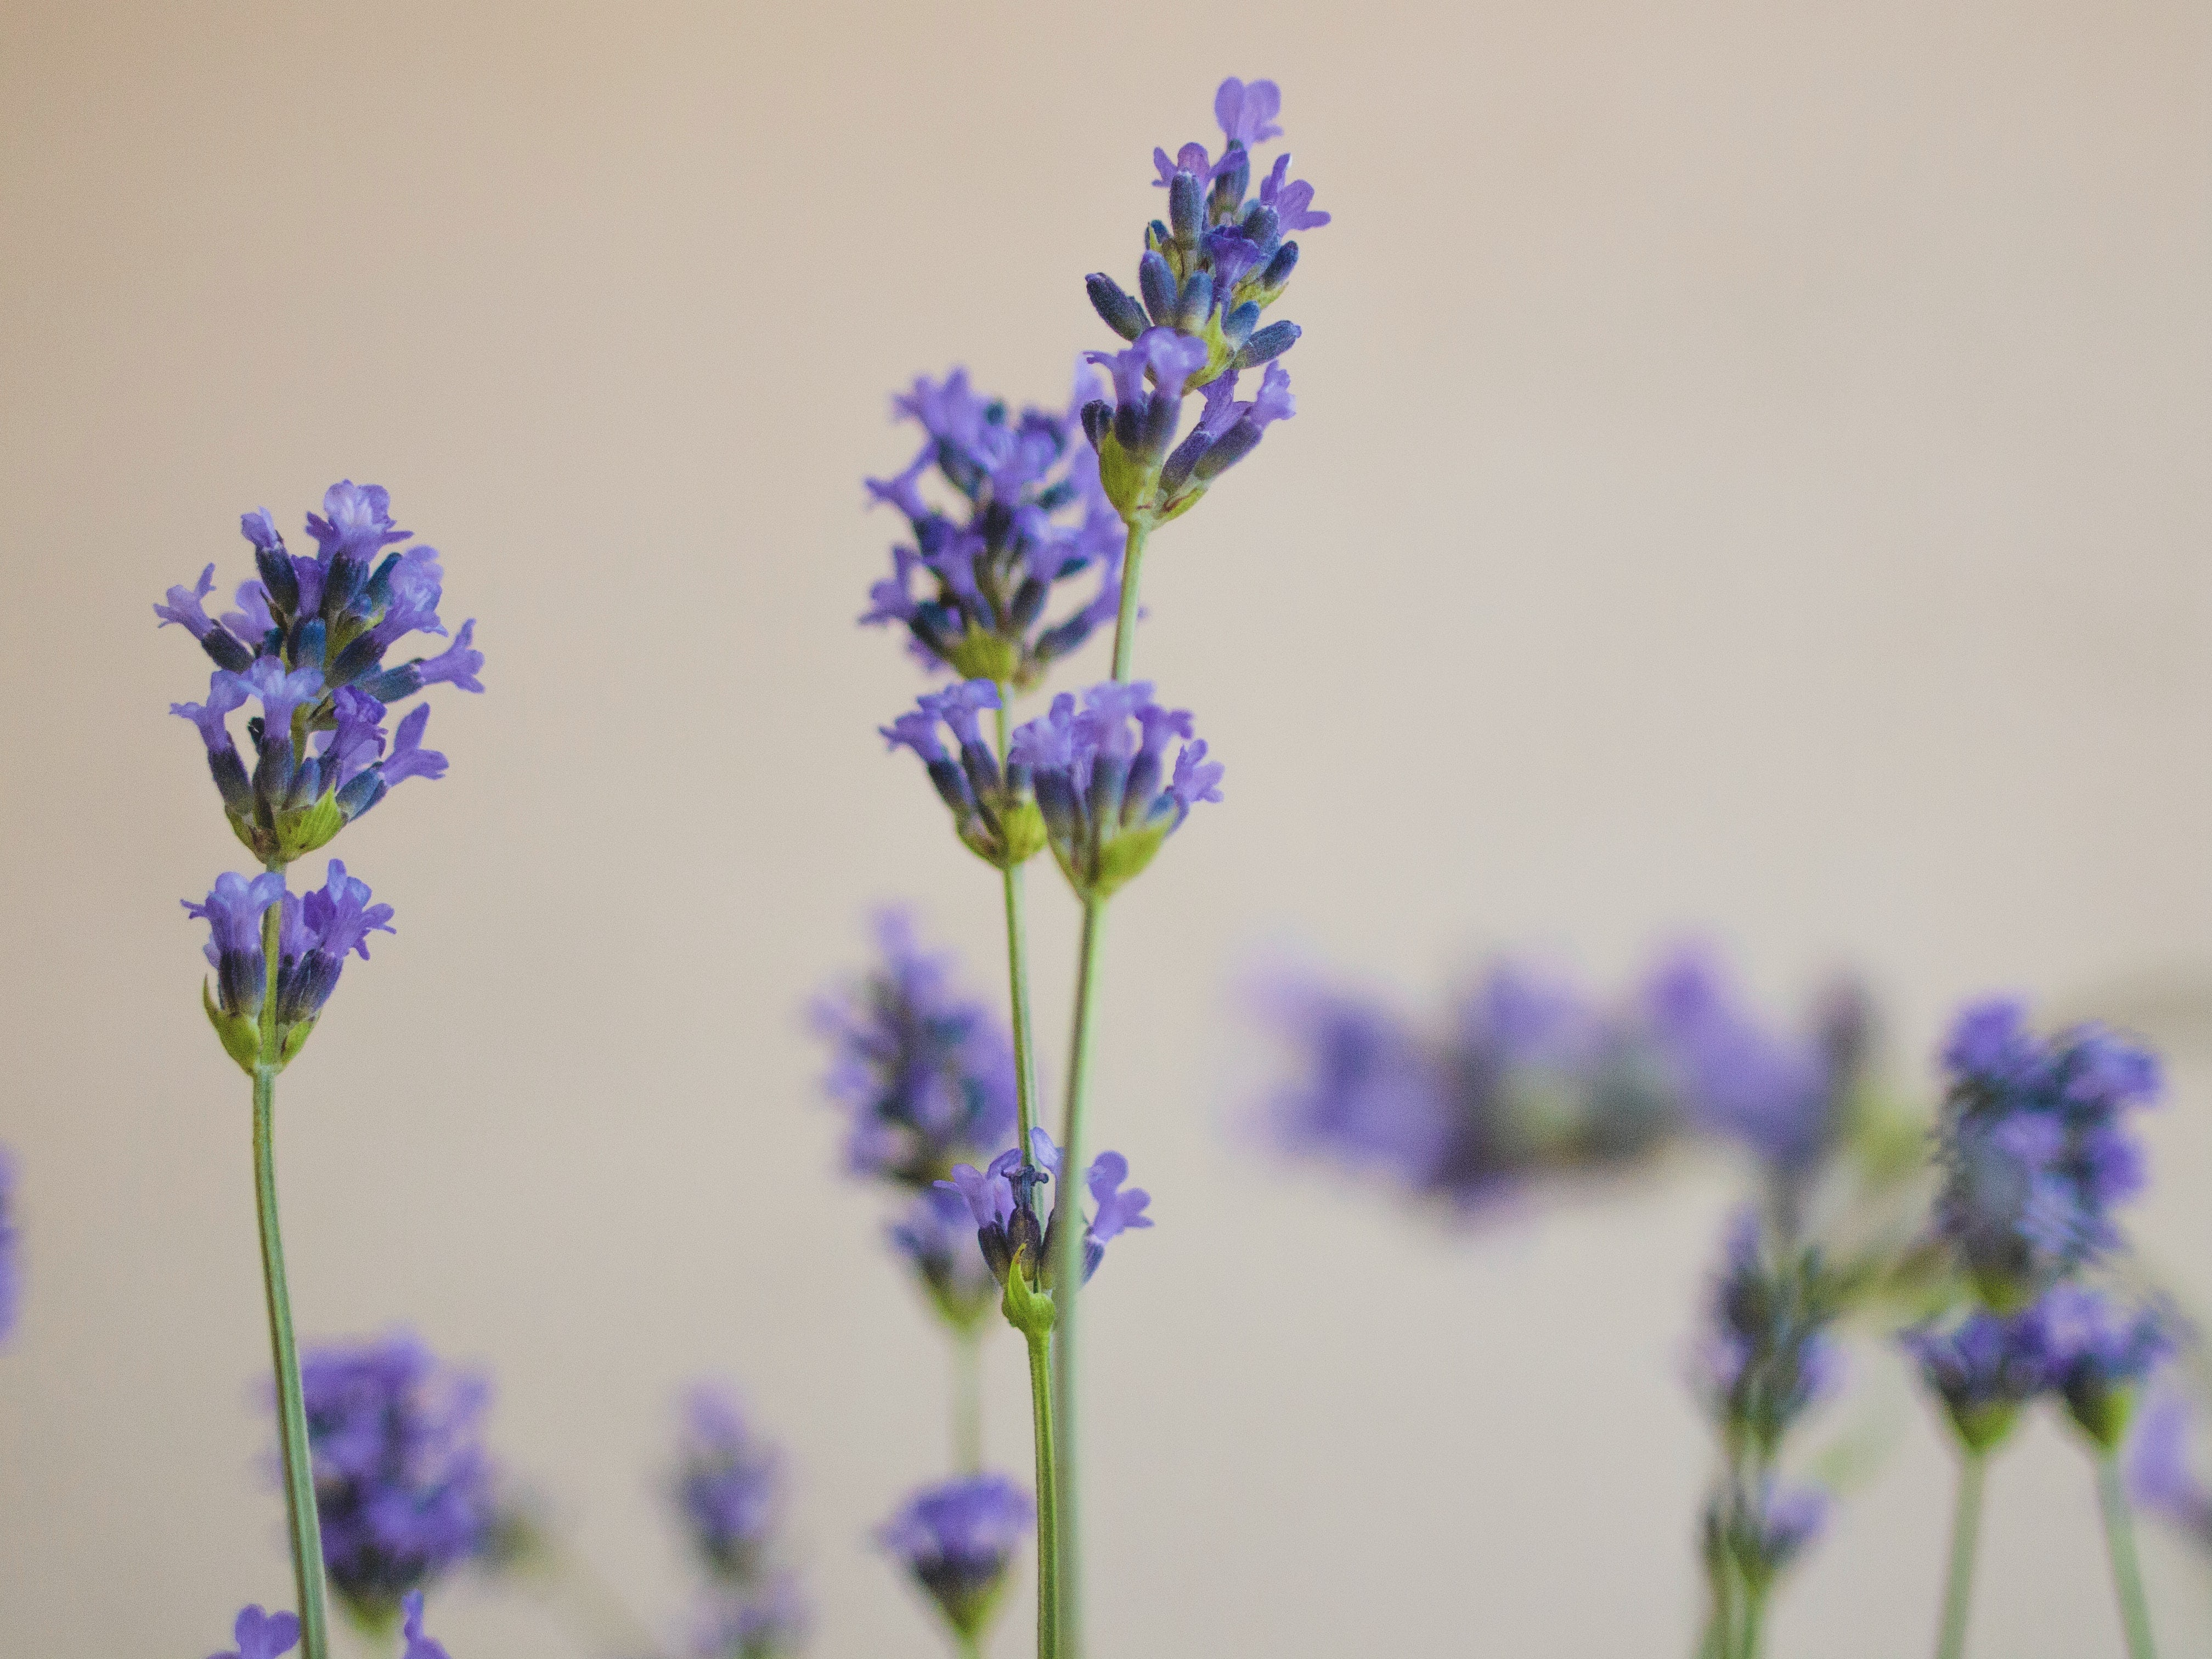 Close-up of blooming lavender